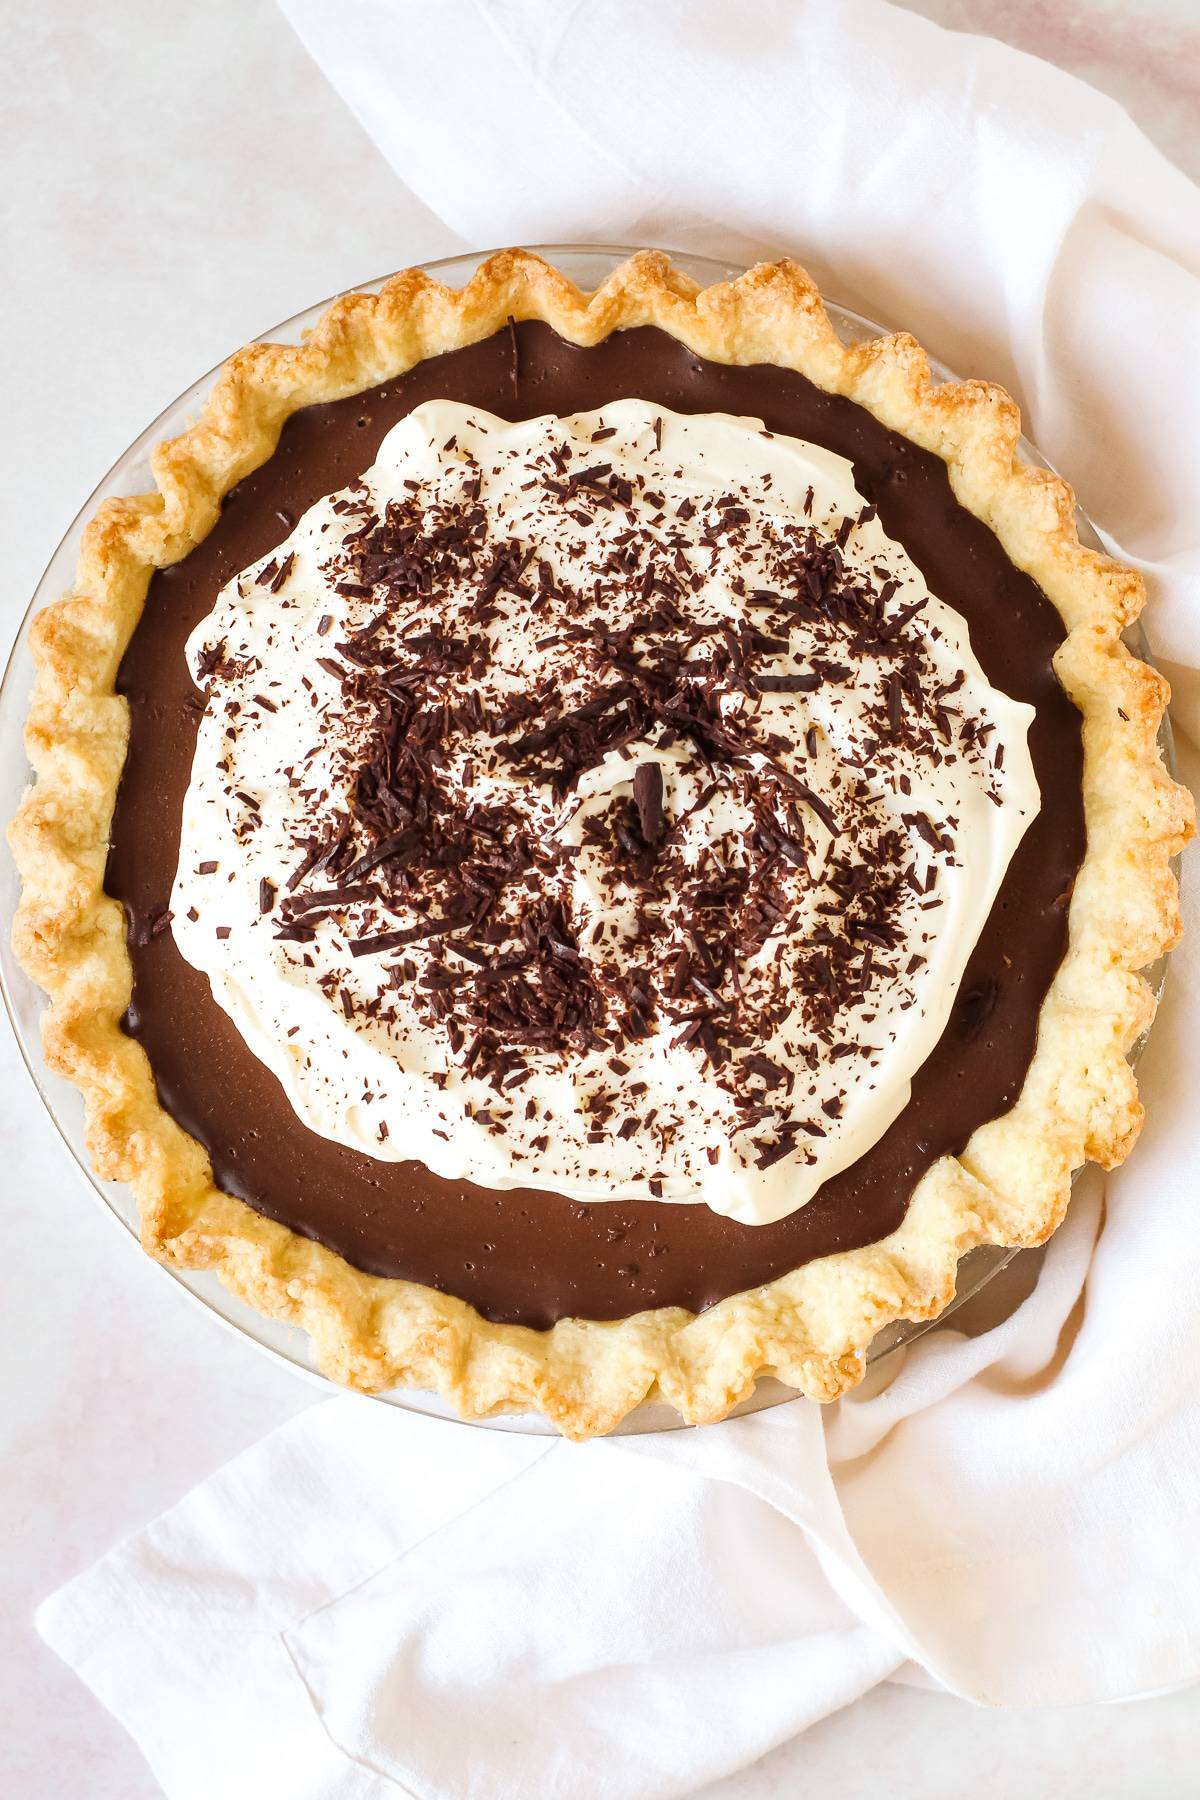 A whole chocolate cream pie with chopped chocolate on top of it.